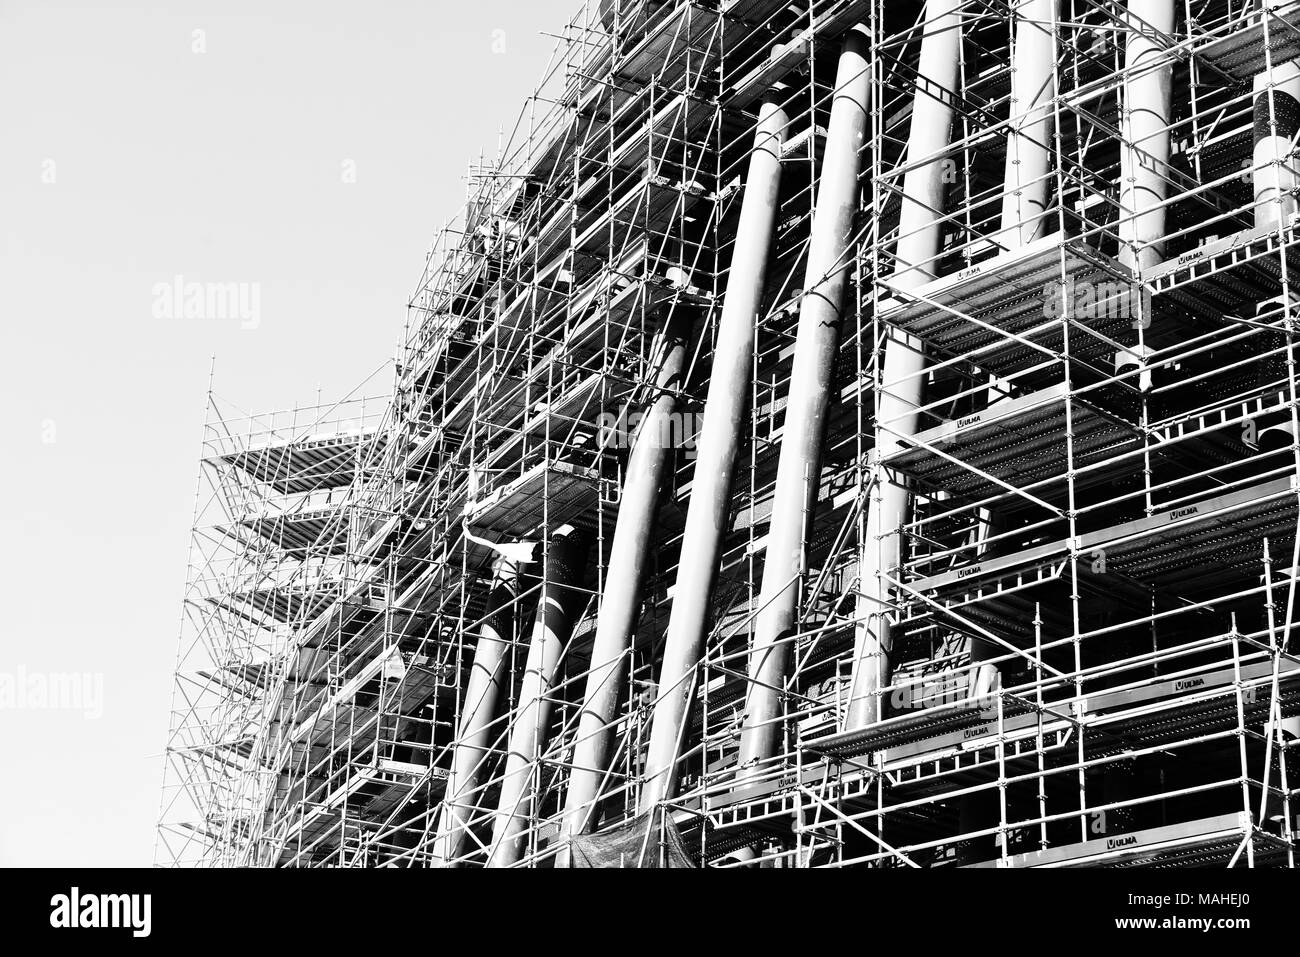 Construction site in Valencia, Spain - Stock Image